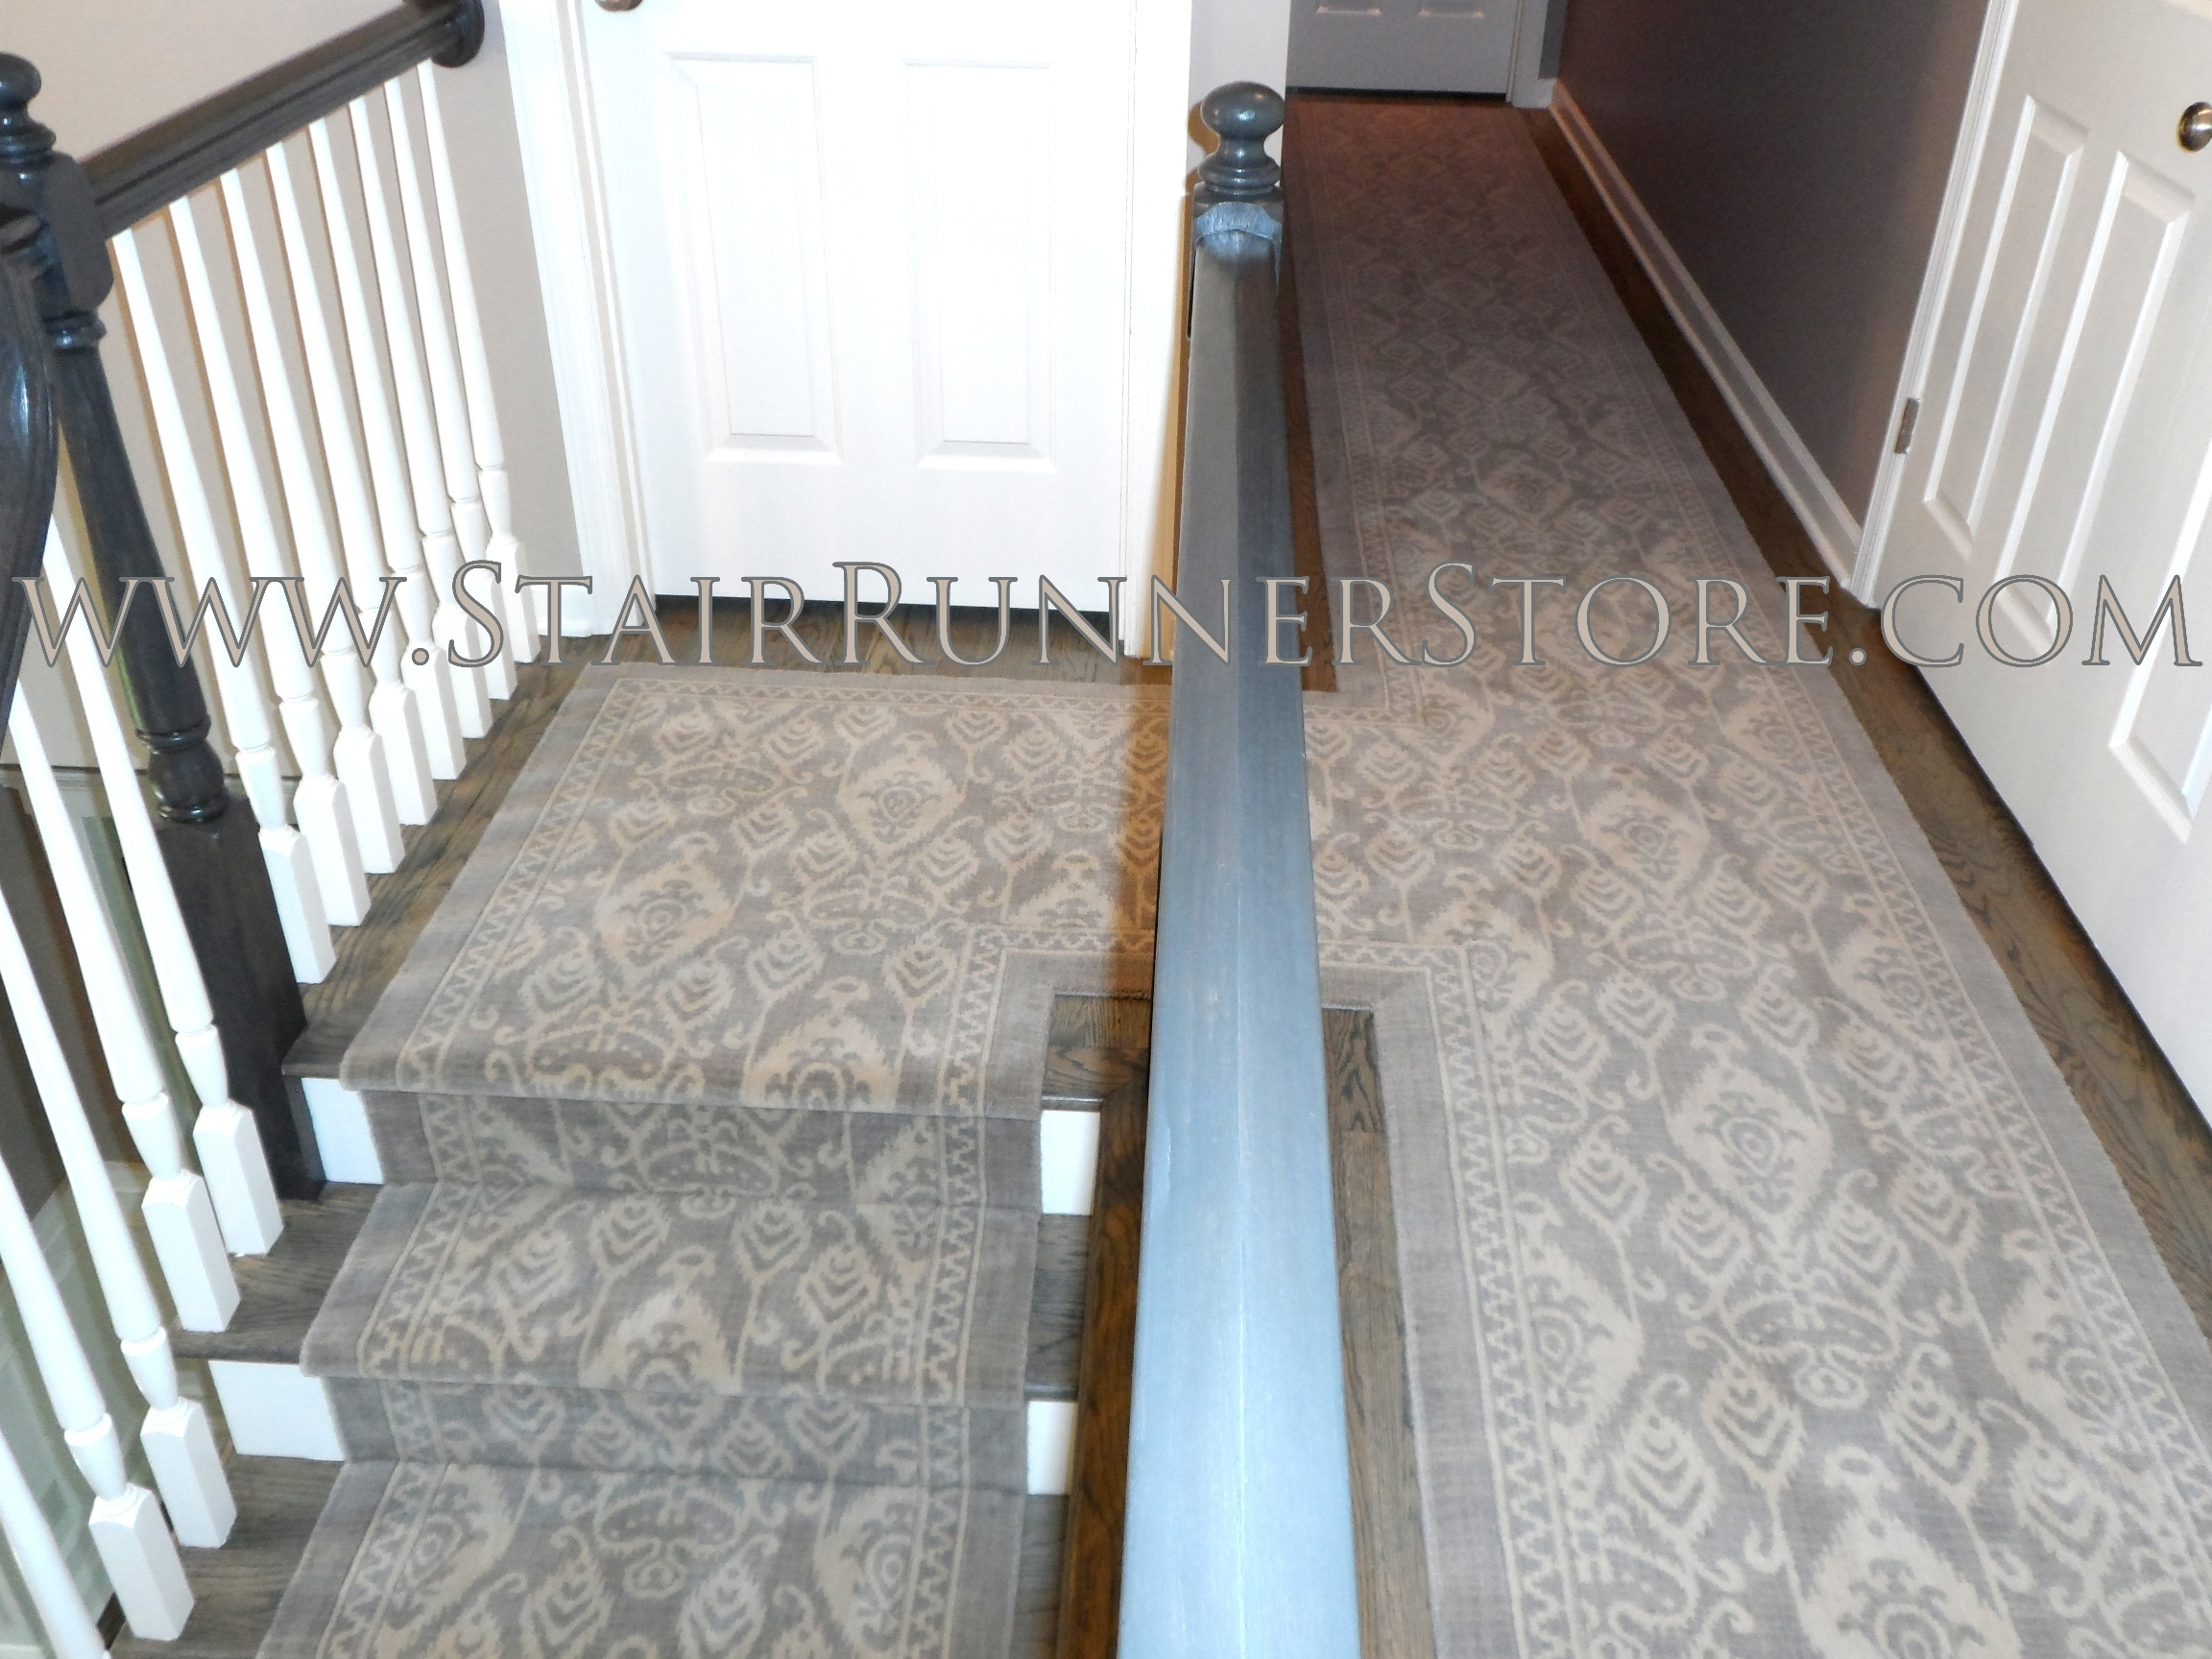 Flooring Lovely Hallway Runners For Floor Decor Idea Pertaining To Long Hallway Carpet Runners (#12 of 20)